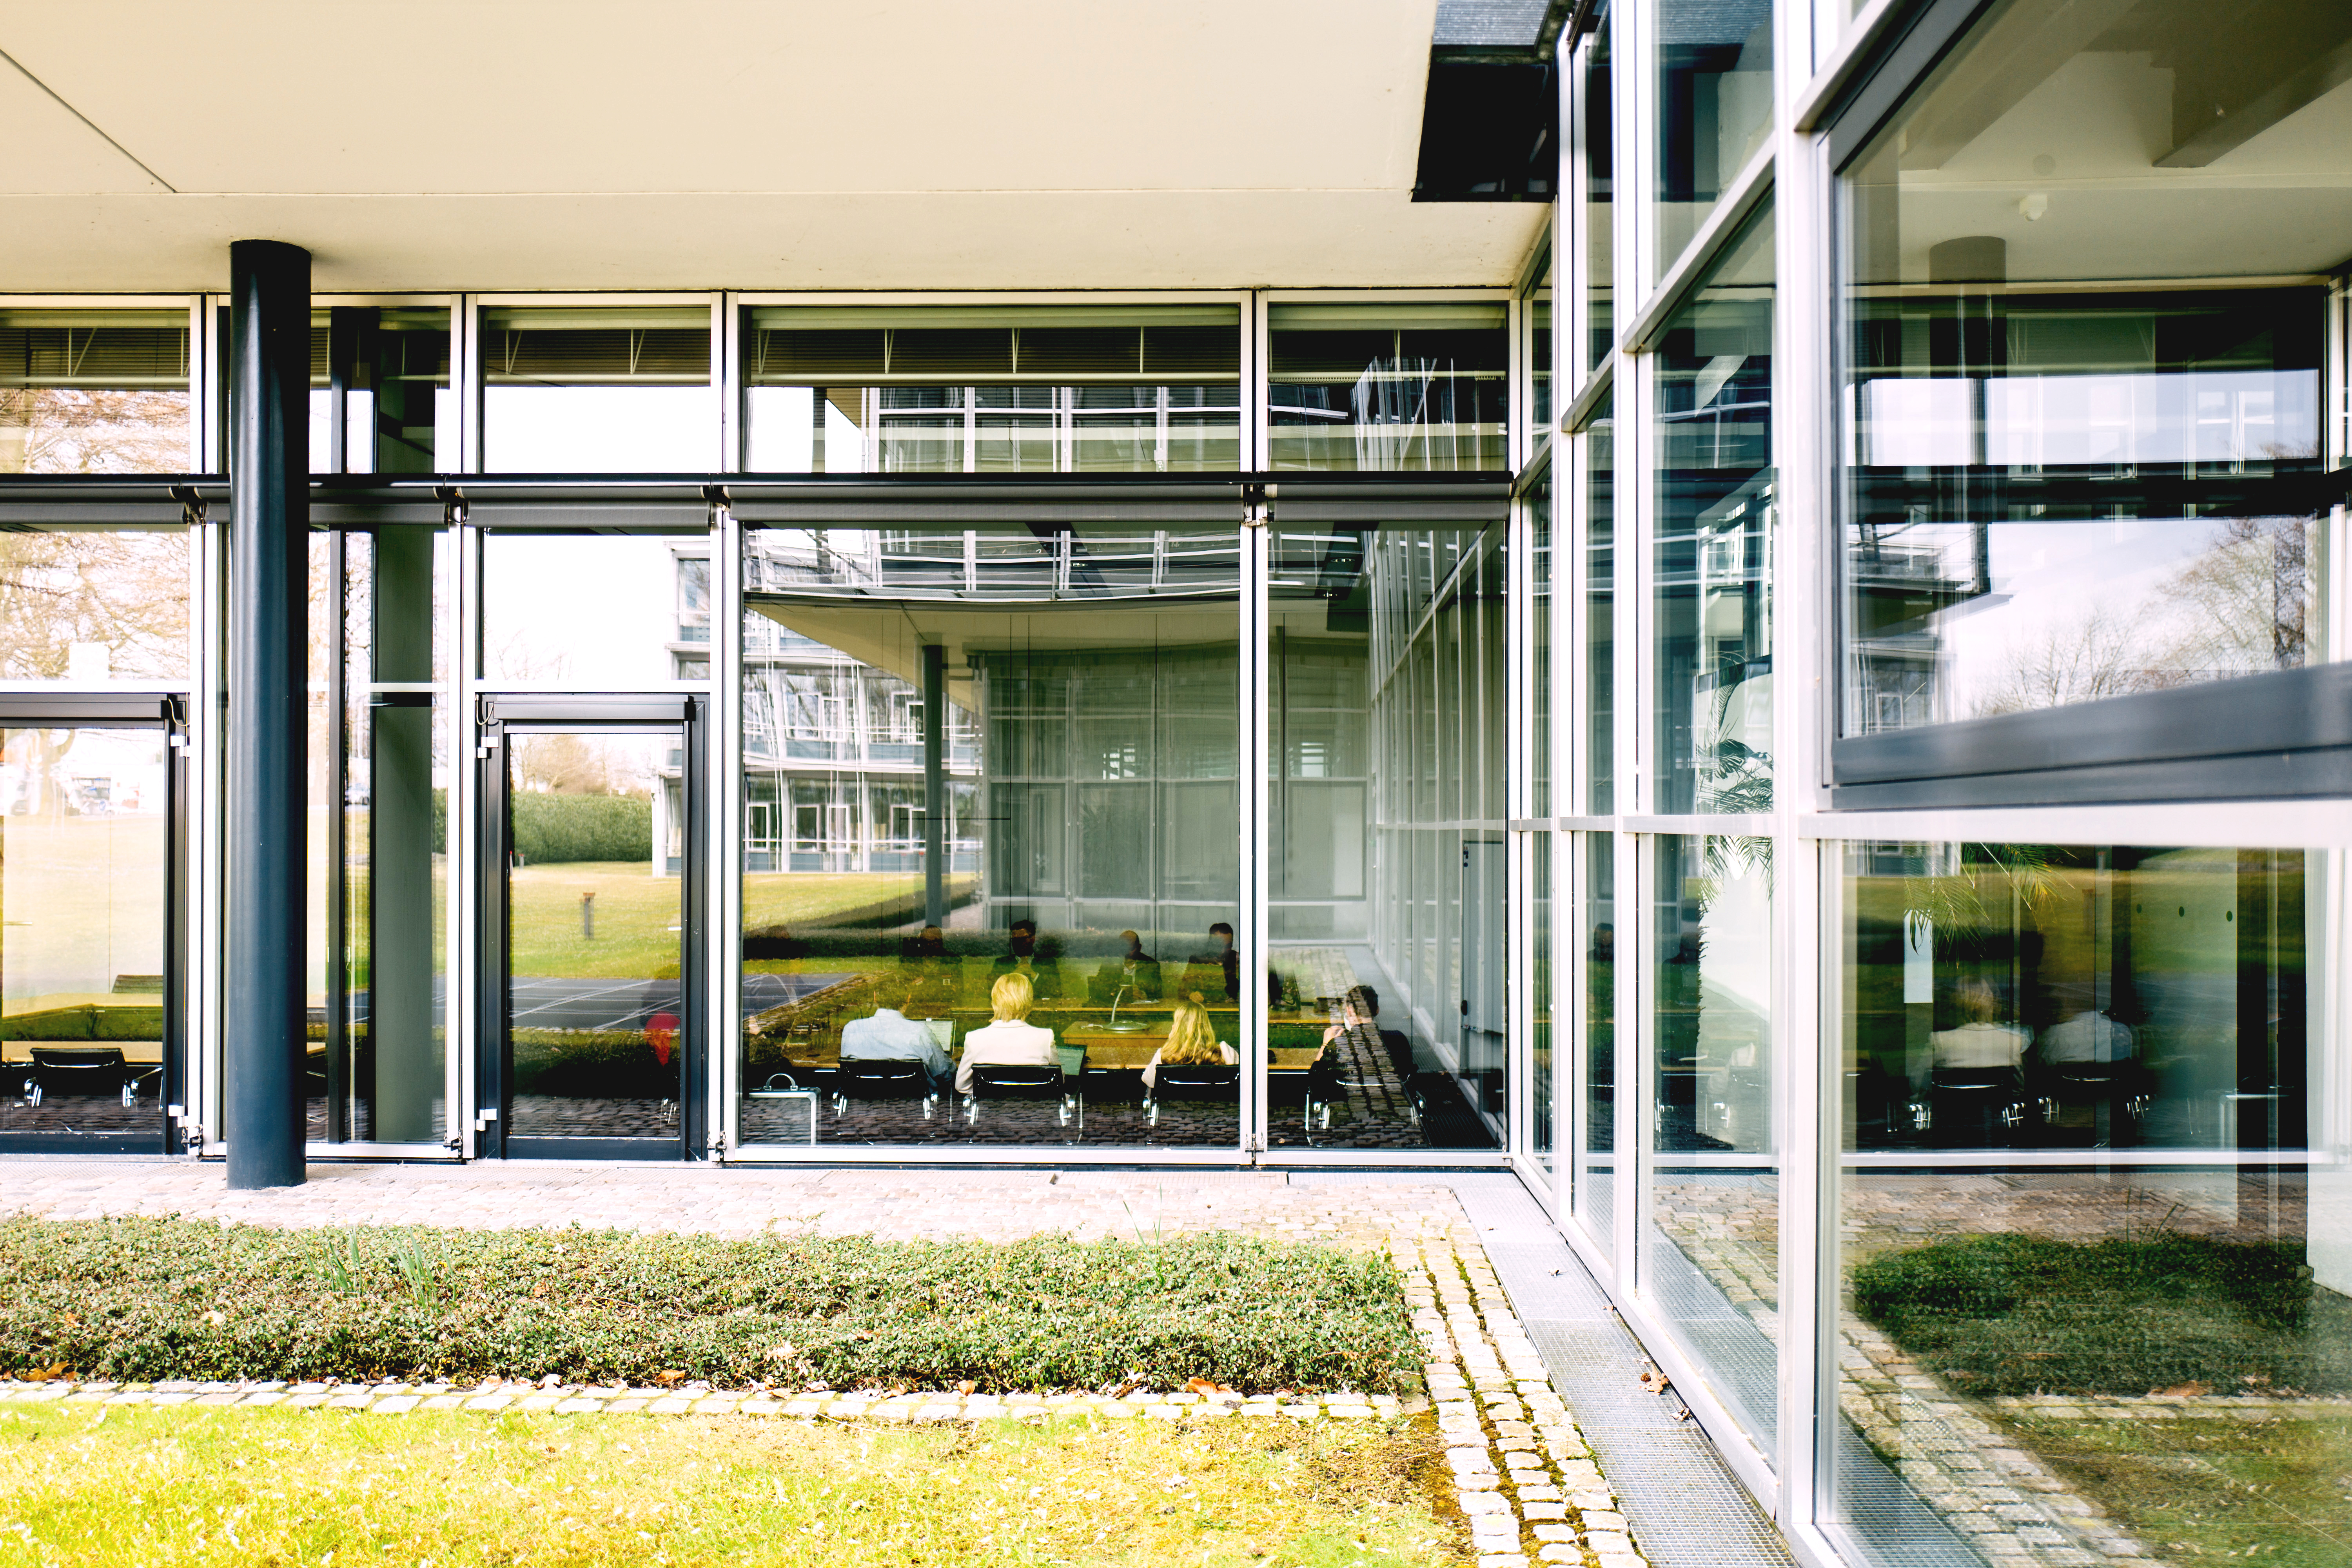 View from the outside onto a glass inner corner of the Bertelsmann Stiftung building. Inside, people are sitting at a conference table.